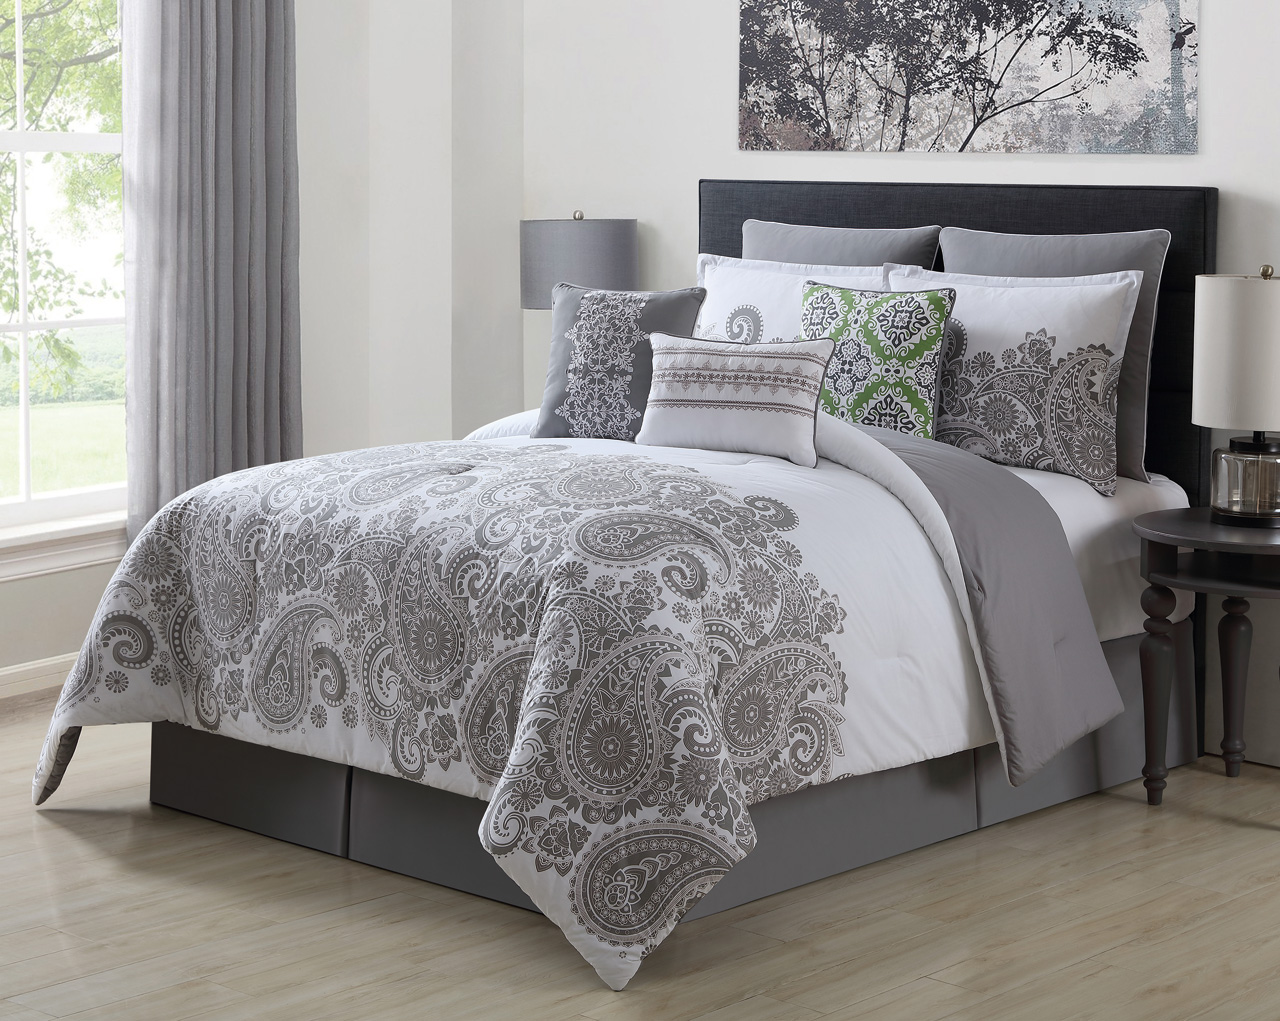 gray and white comforter 9 Piece Mona Gray/White 100% Cotton Comforter Set gray and white comforter